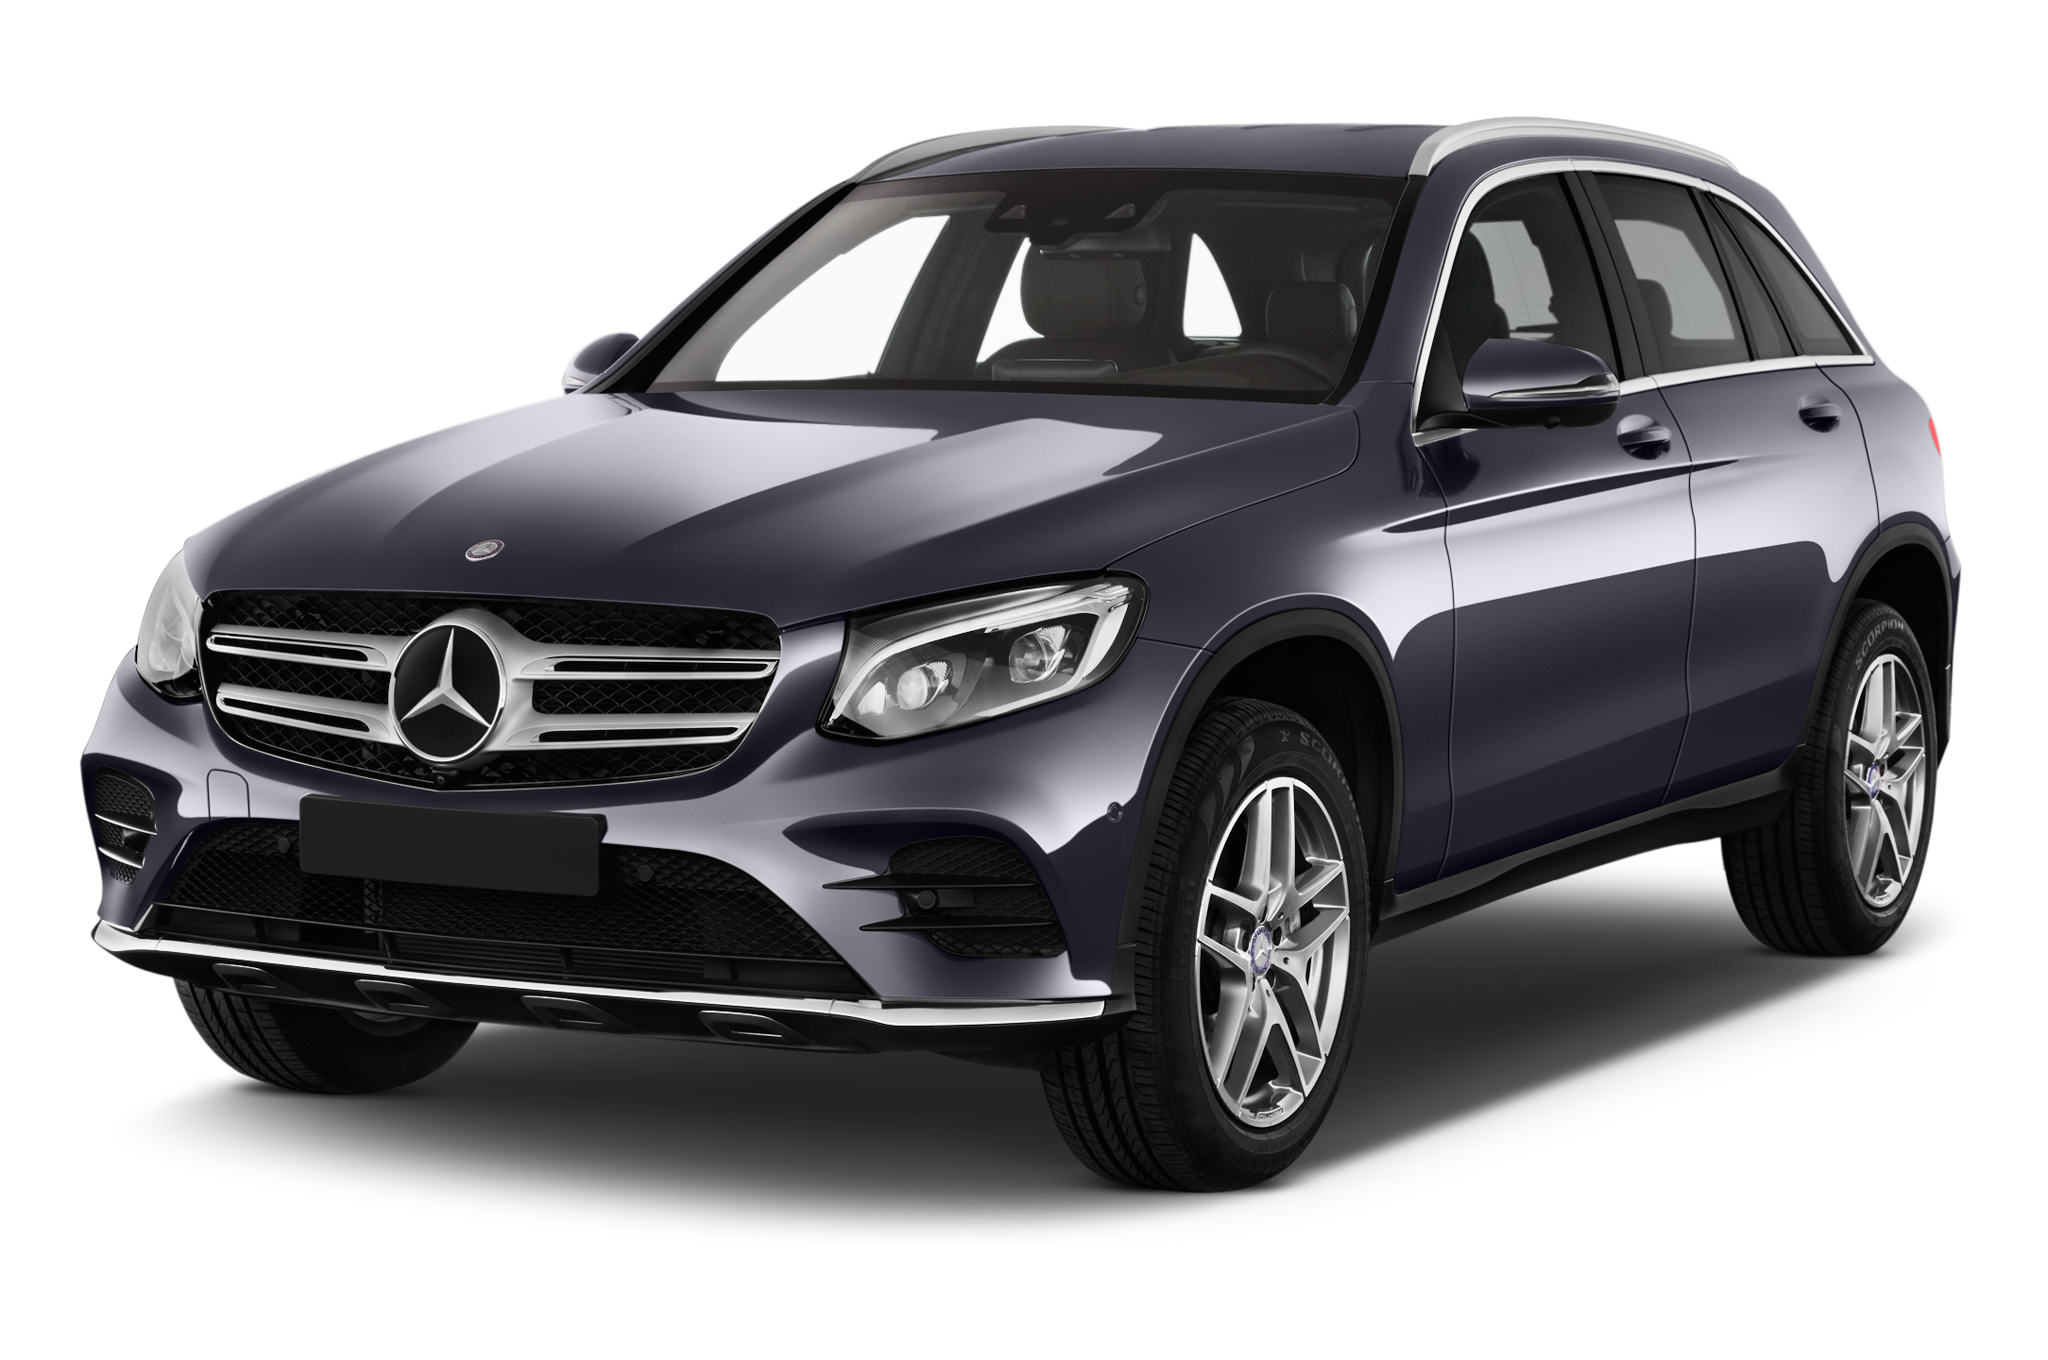 2016 mercedes benz glc class glc 300 4matic options msn autos. Black Bedroom Furniture Sets. Home Design Ideas